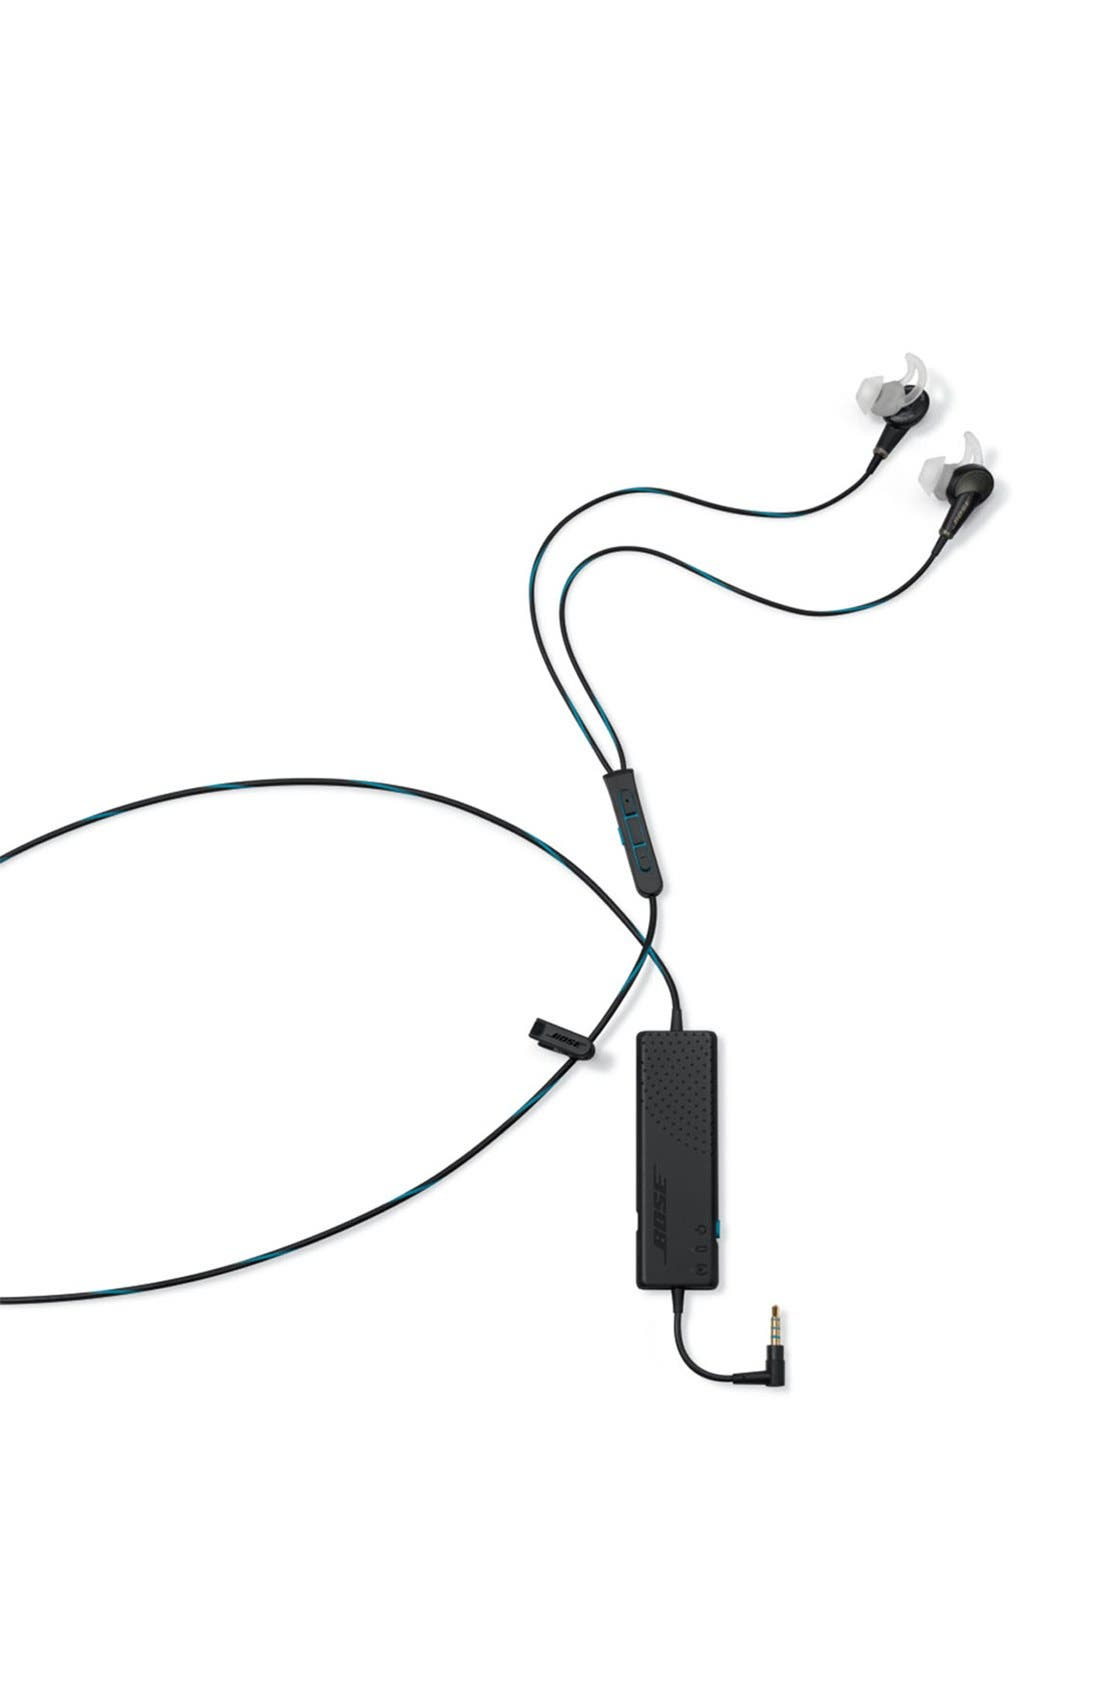 QuietComfort<sup>®</sup> 20 Acoustic Noise Cancelling<sup>®</sup> Headphones,                             Alternate thumbnail 2, color,                             Black